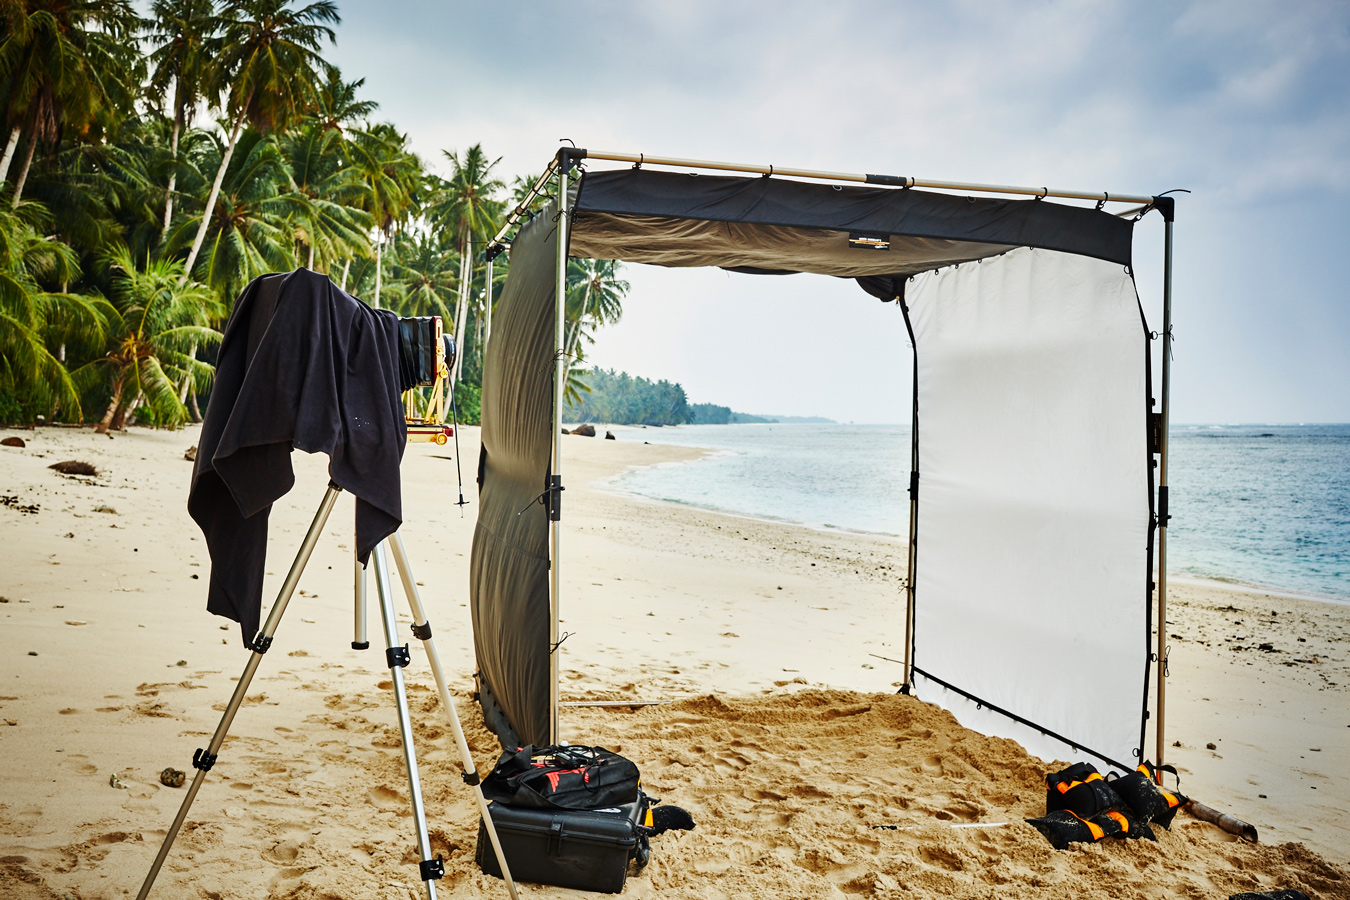 Australian photographer Richard Freeman tests the Sunbounce Cage on location in Indonesia.